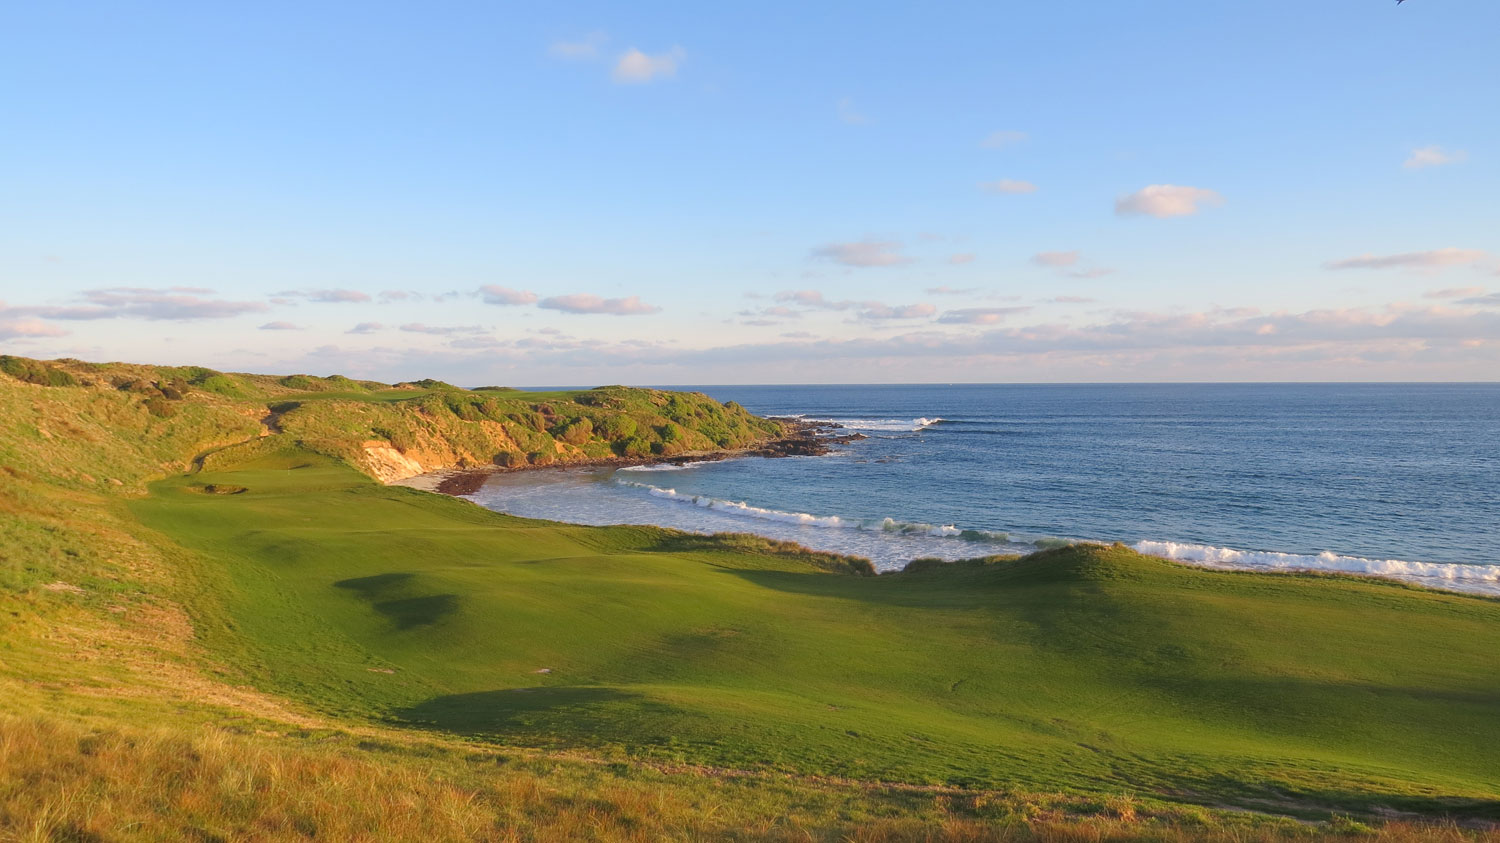 Cape Wickham - 18th Hole, Par 4 | Image via Cape Wickham Links